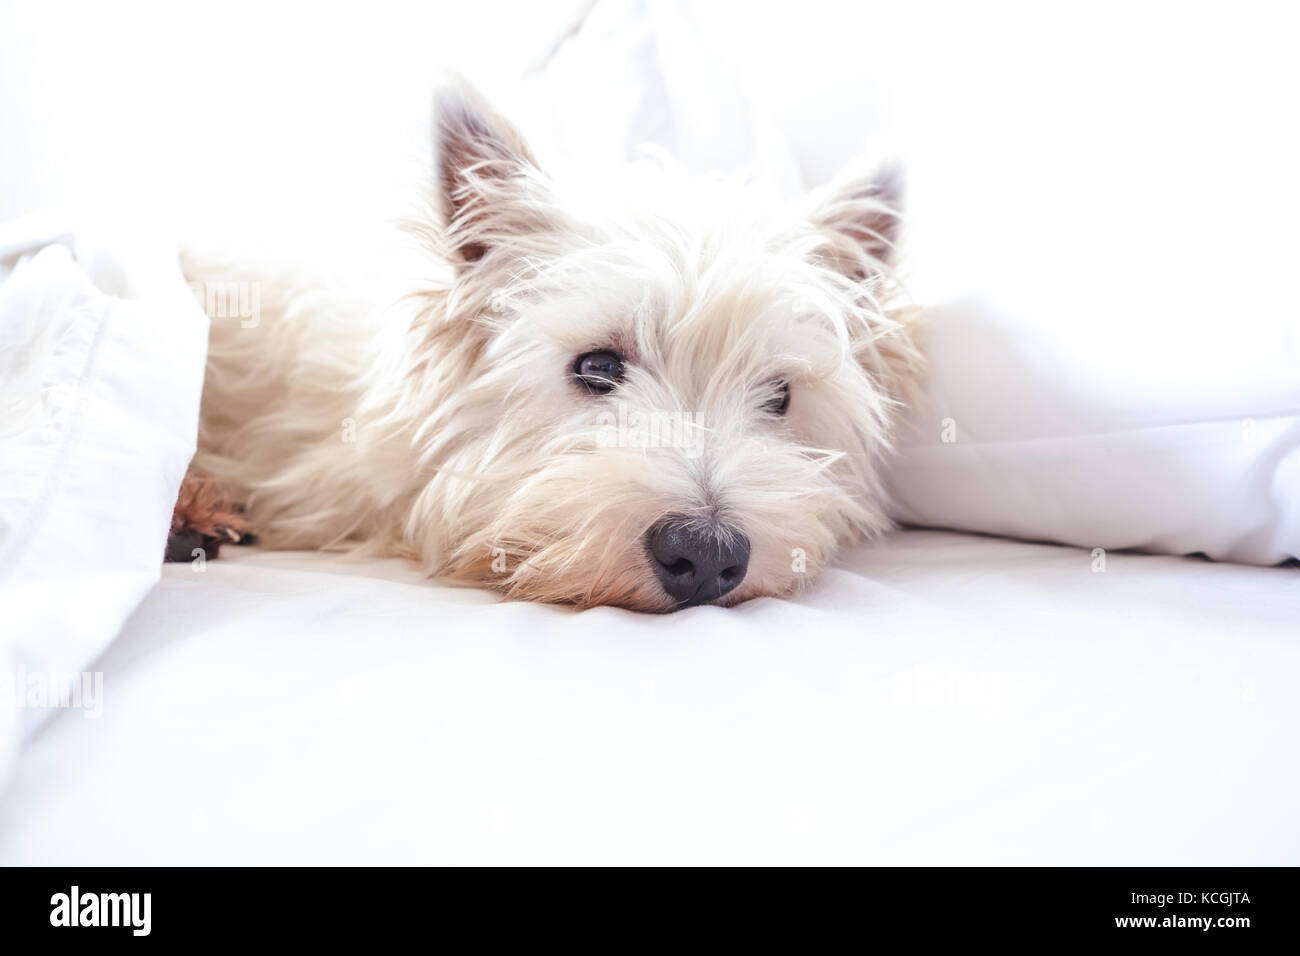 High key image of west highland white terrier westie dog in bed with pillow and sheets with copy space - Stock Image